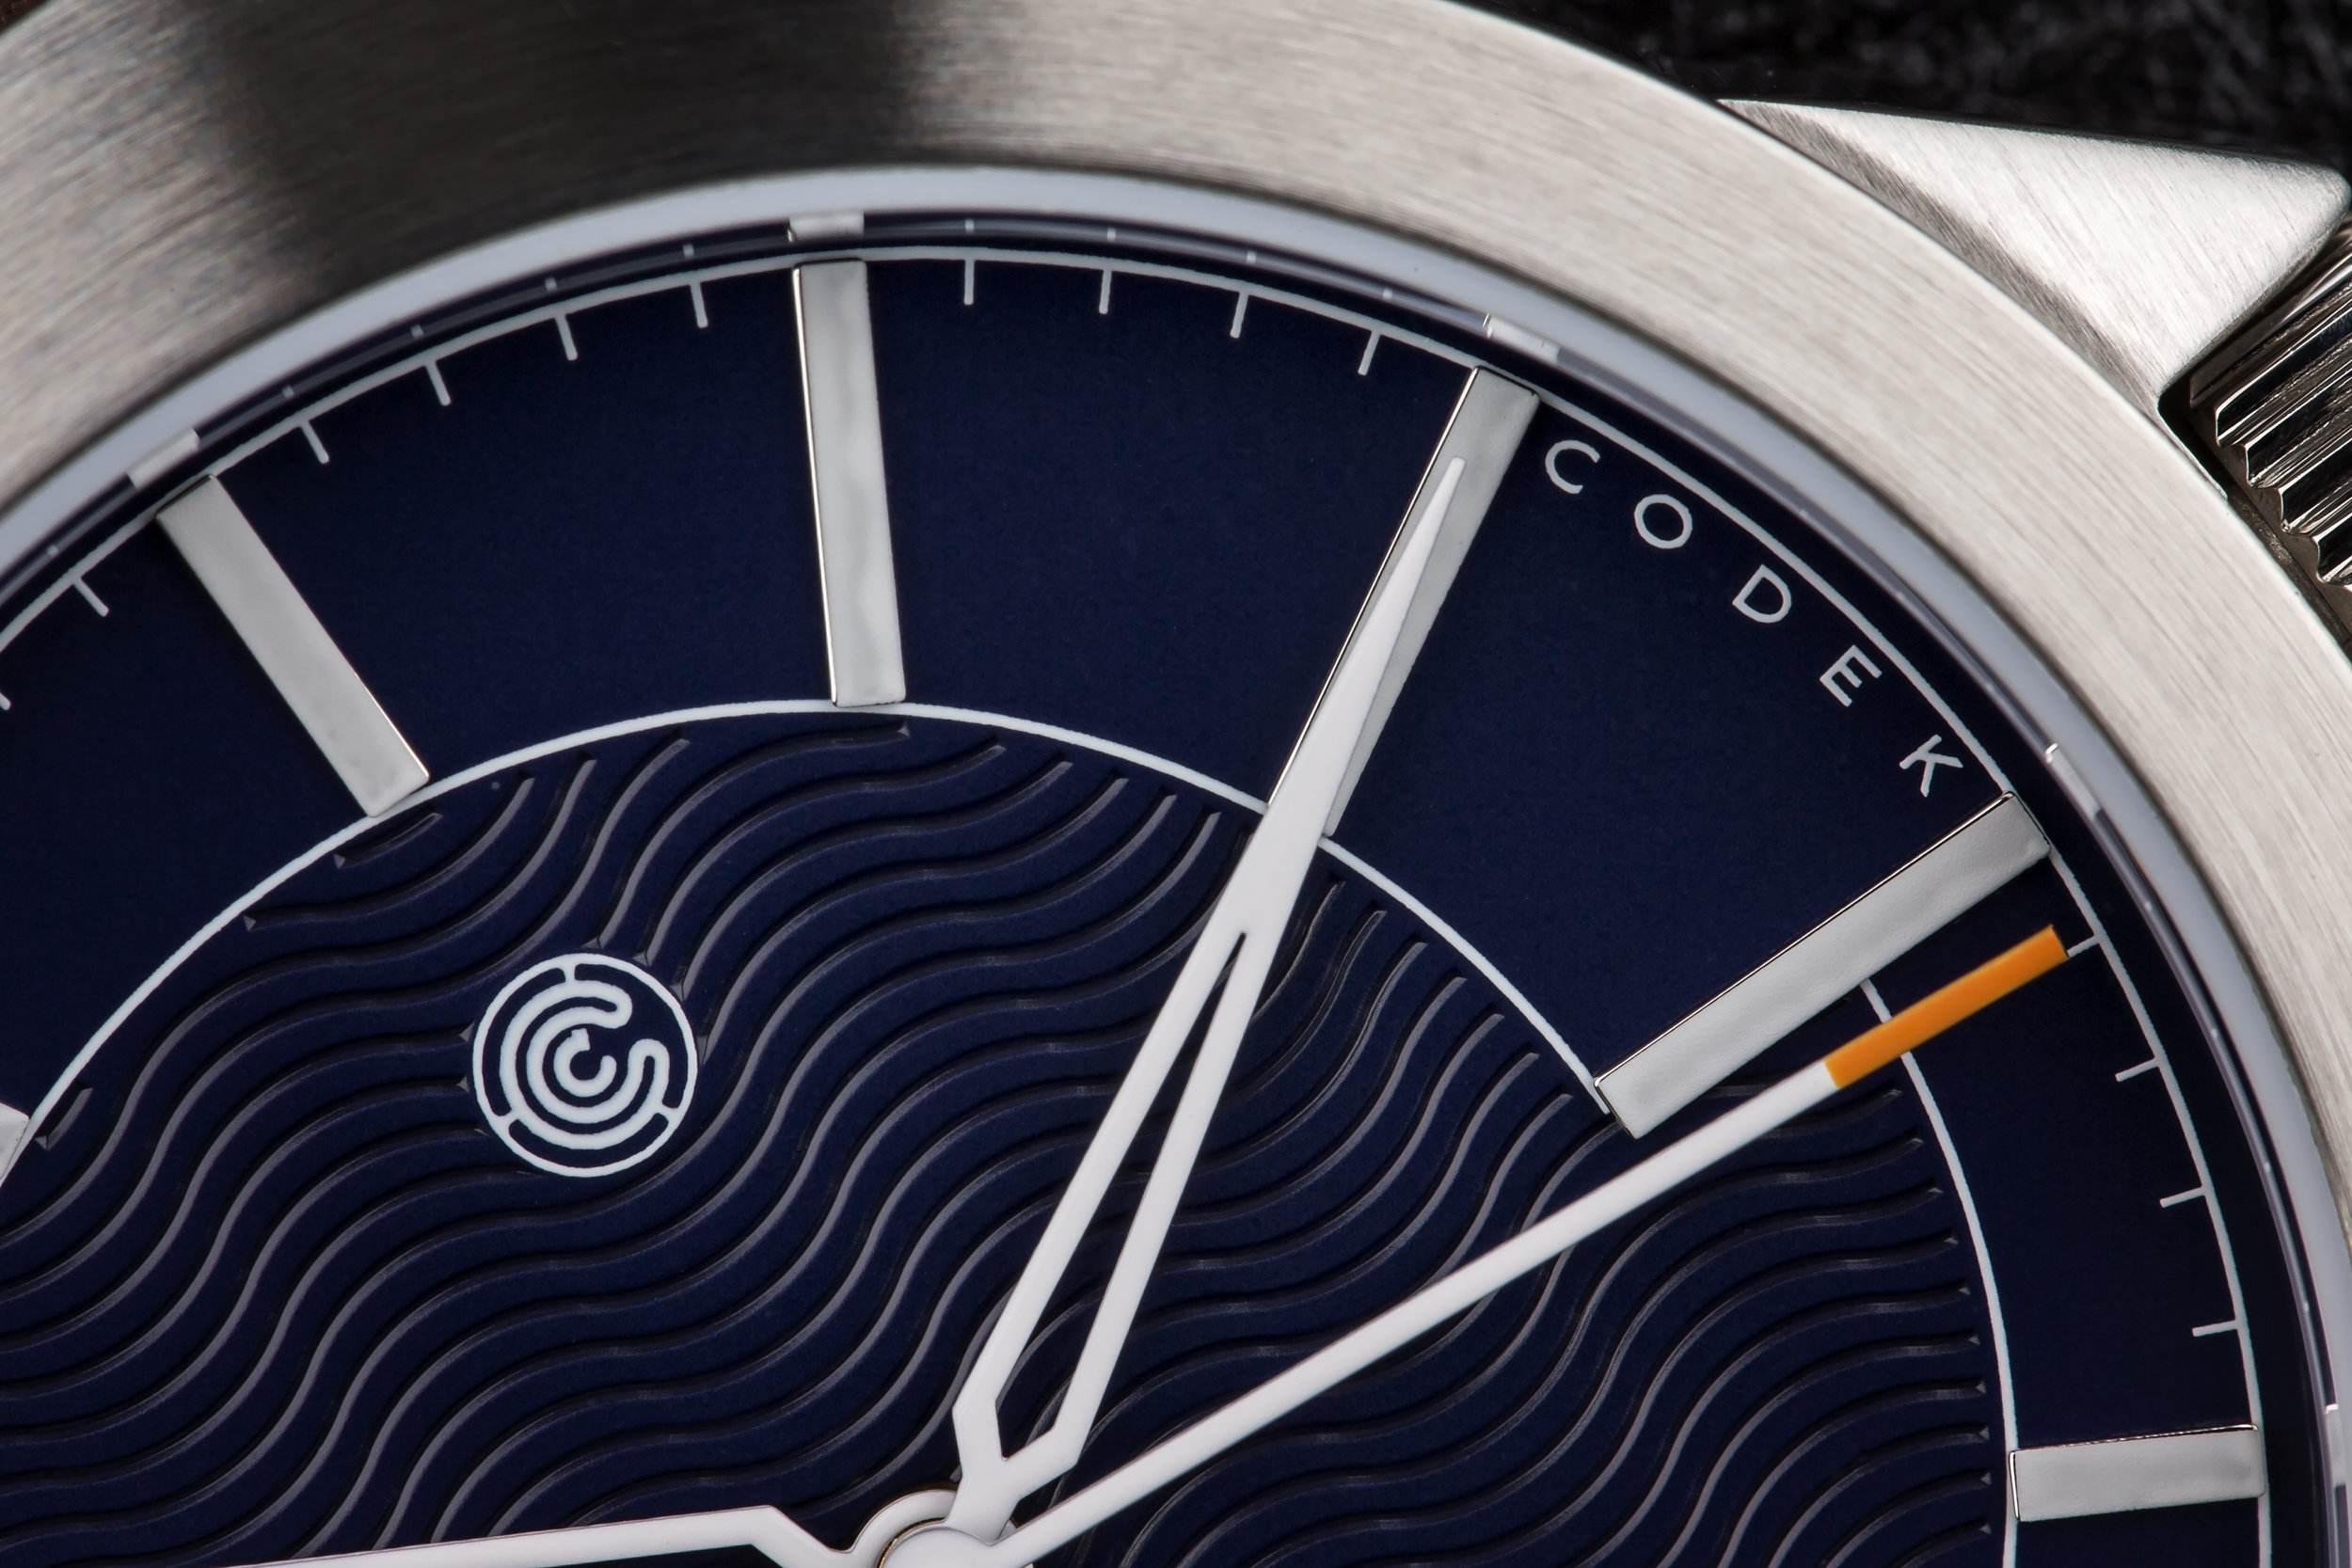 Dial - The hour indices add playful tension because they do not conform to one standard length. The embossed waves shimmer in different lighting — at times blending into the background, and at other times forming the highlight of the dial. Design elements like these keep the watch fresh and visually interesting over time.